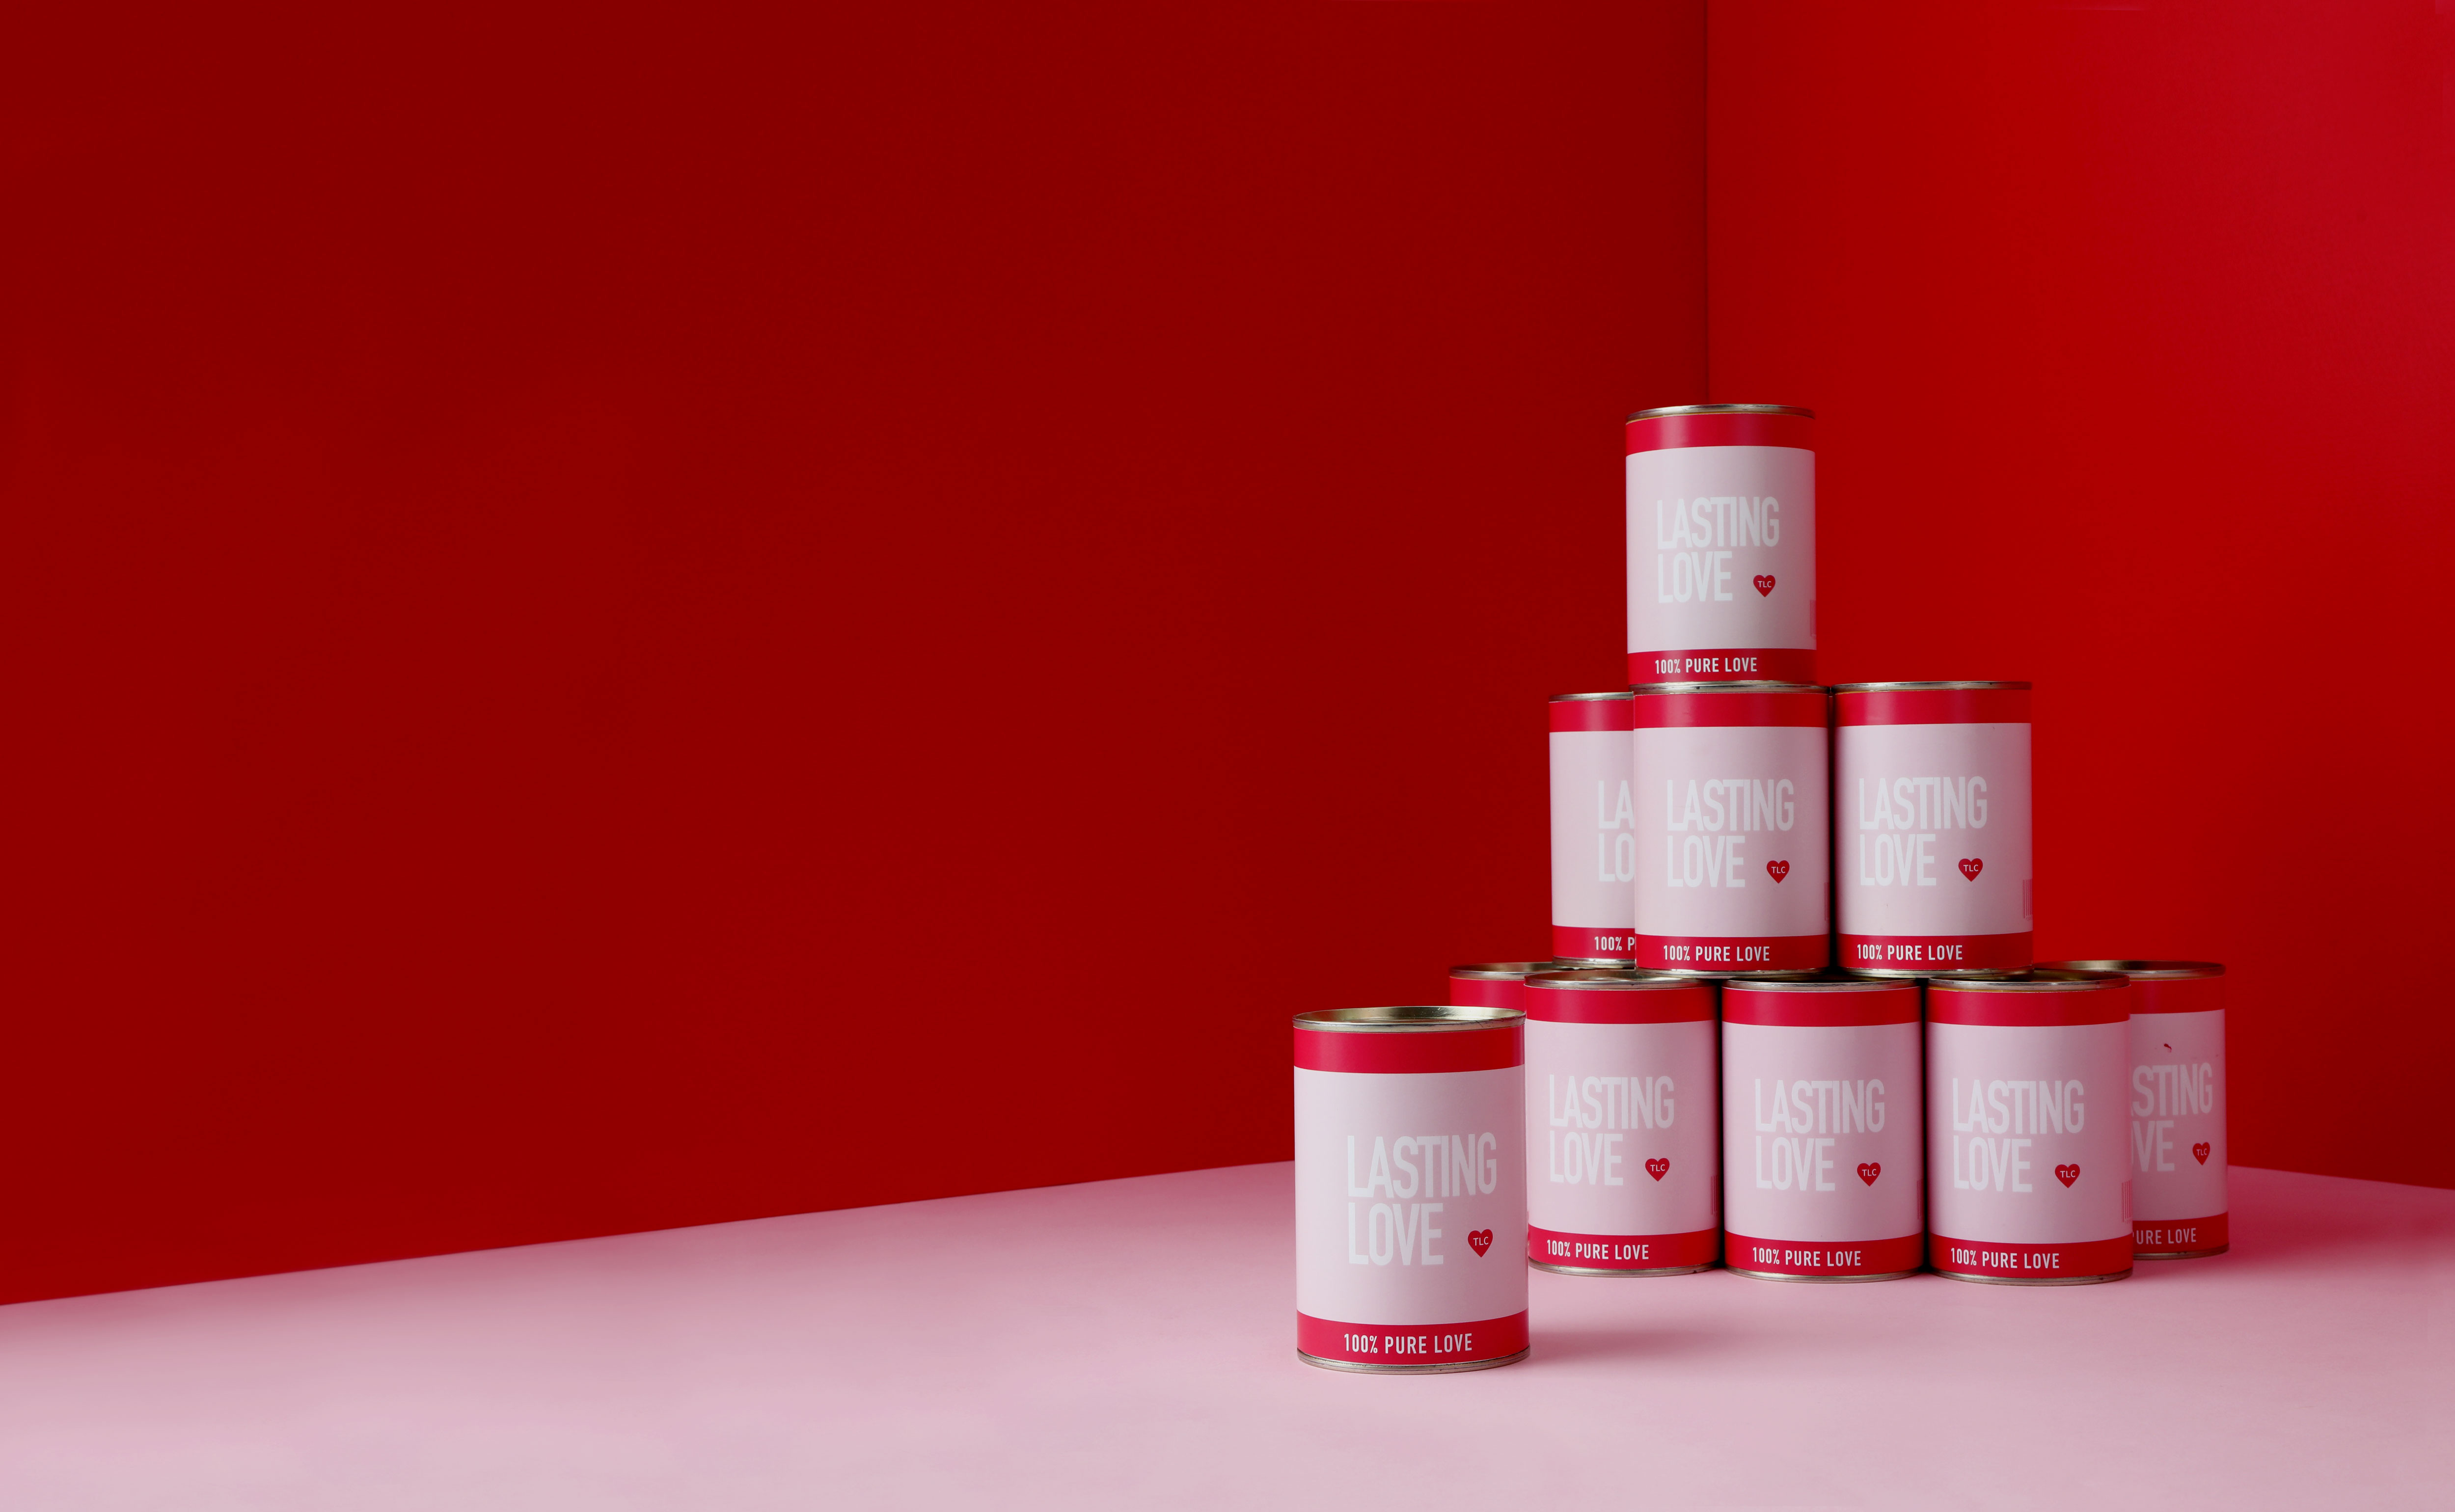 Lasting Love Cans